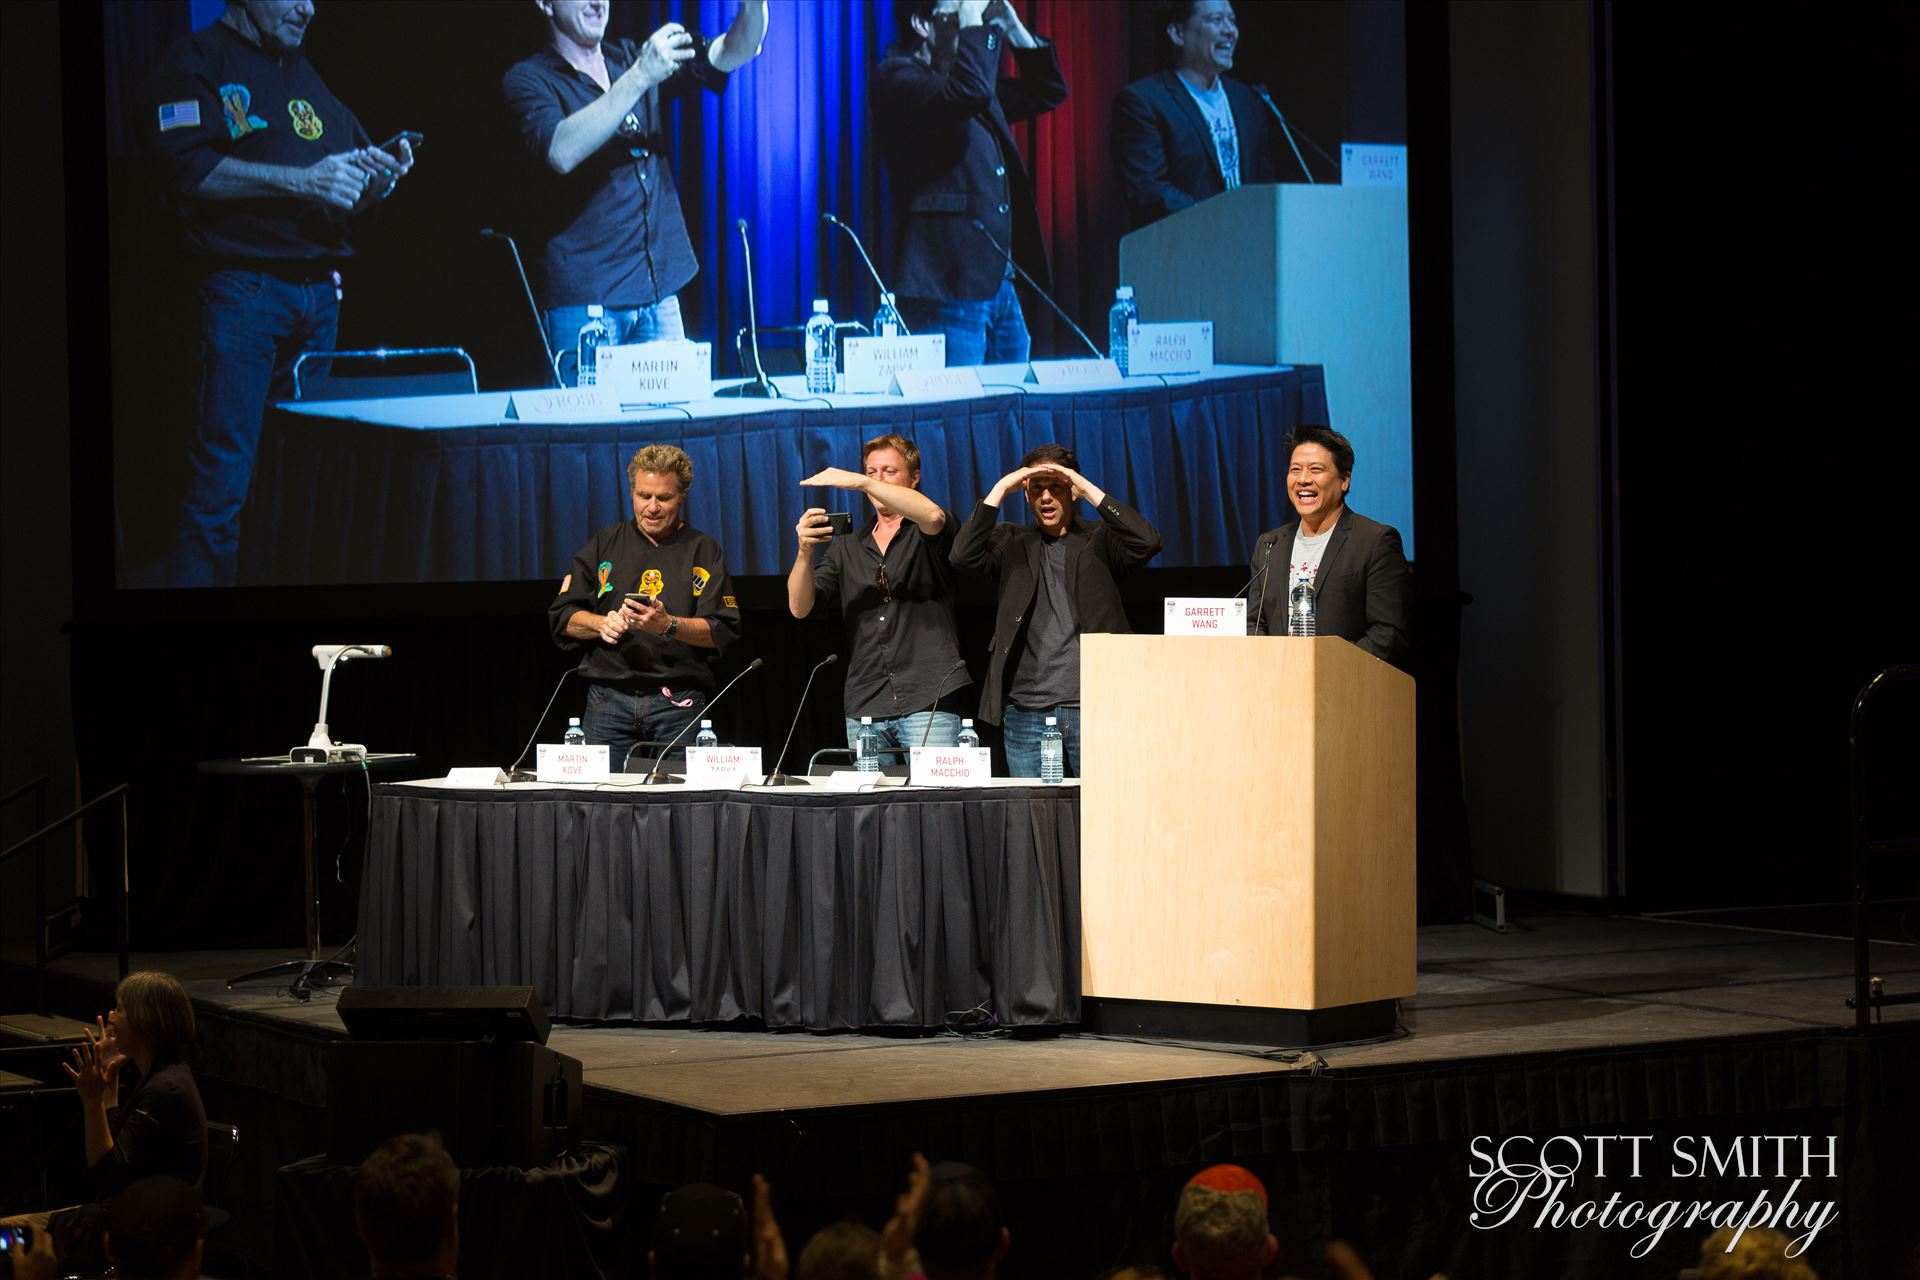 Denver Comic Con 2016 35 - Denver Comic Con 2016 at the Colorado Convention Center. Garrett Wang, Ralph Macchio, Martin Kove and William Zabka. by D Scott Smith